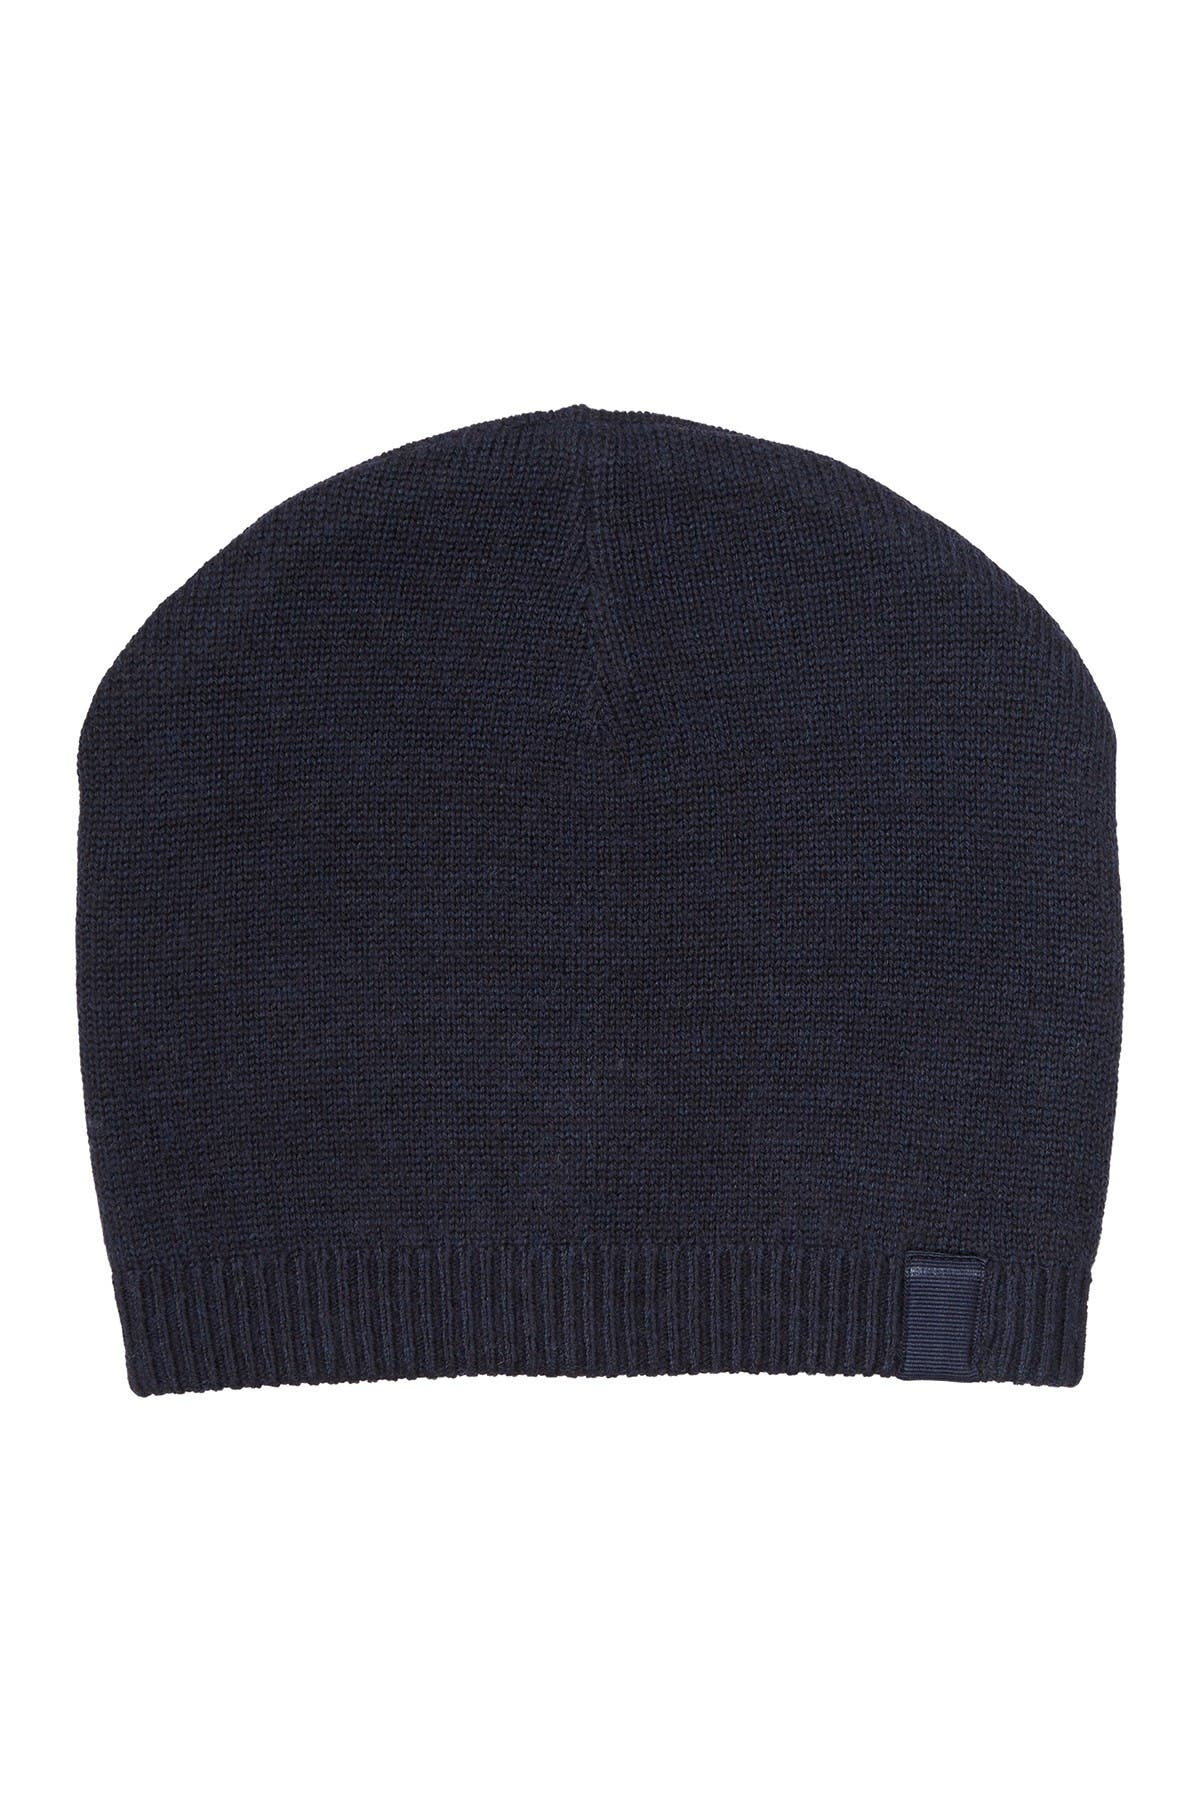 Image of Portolano Merino Wool Reversible Hat